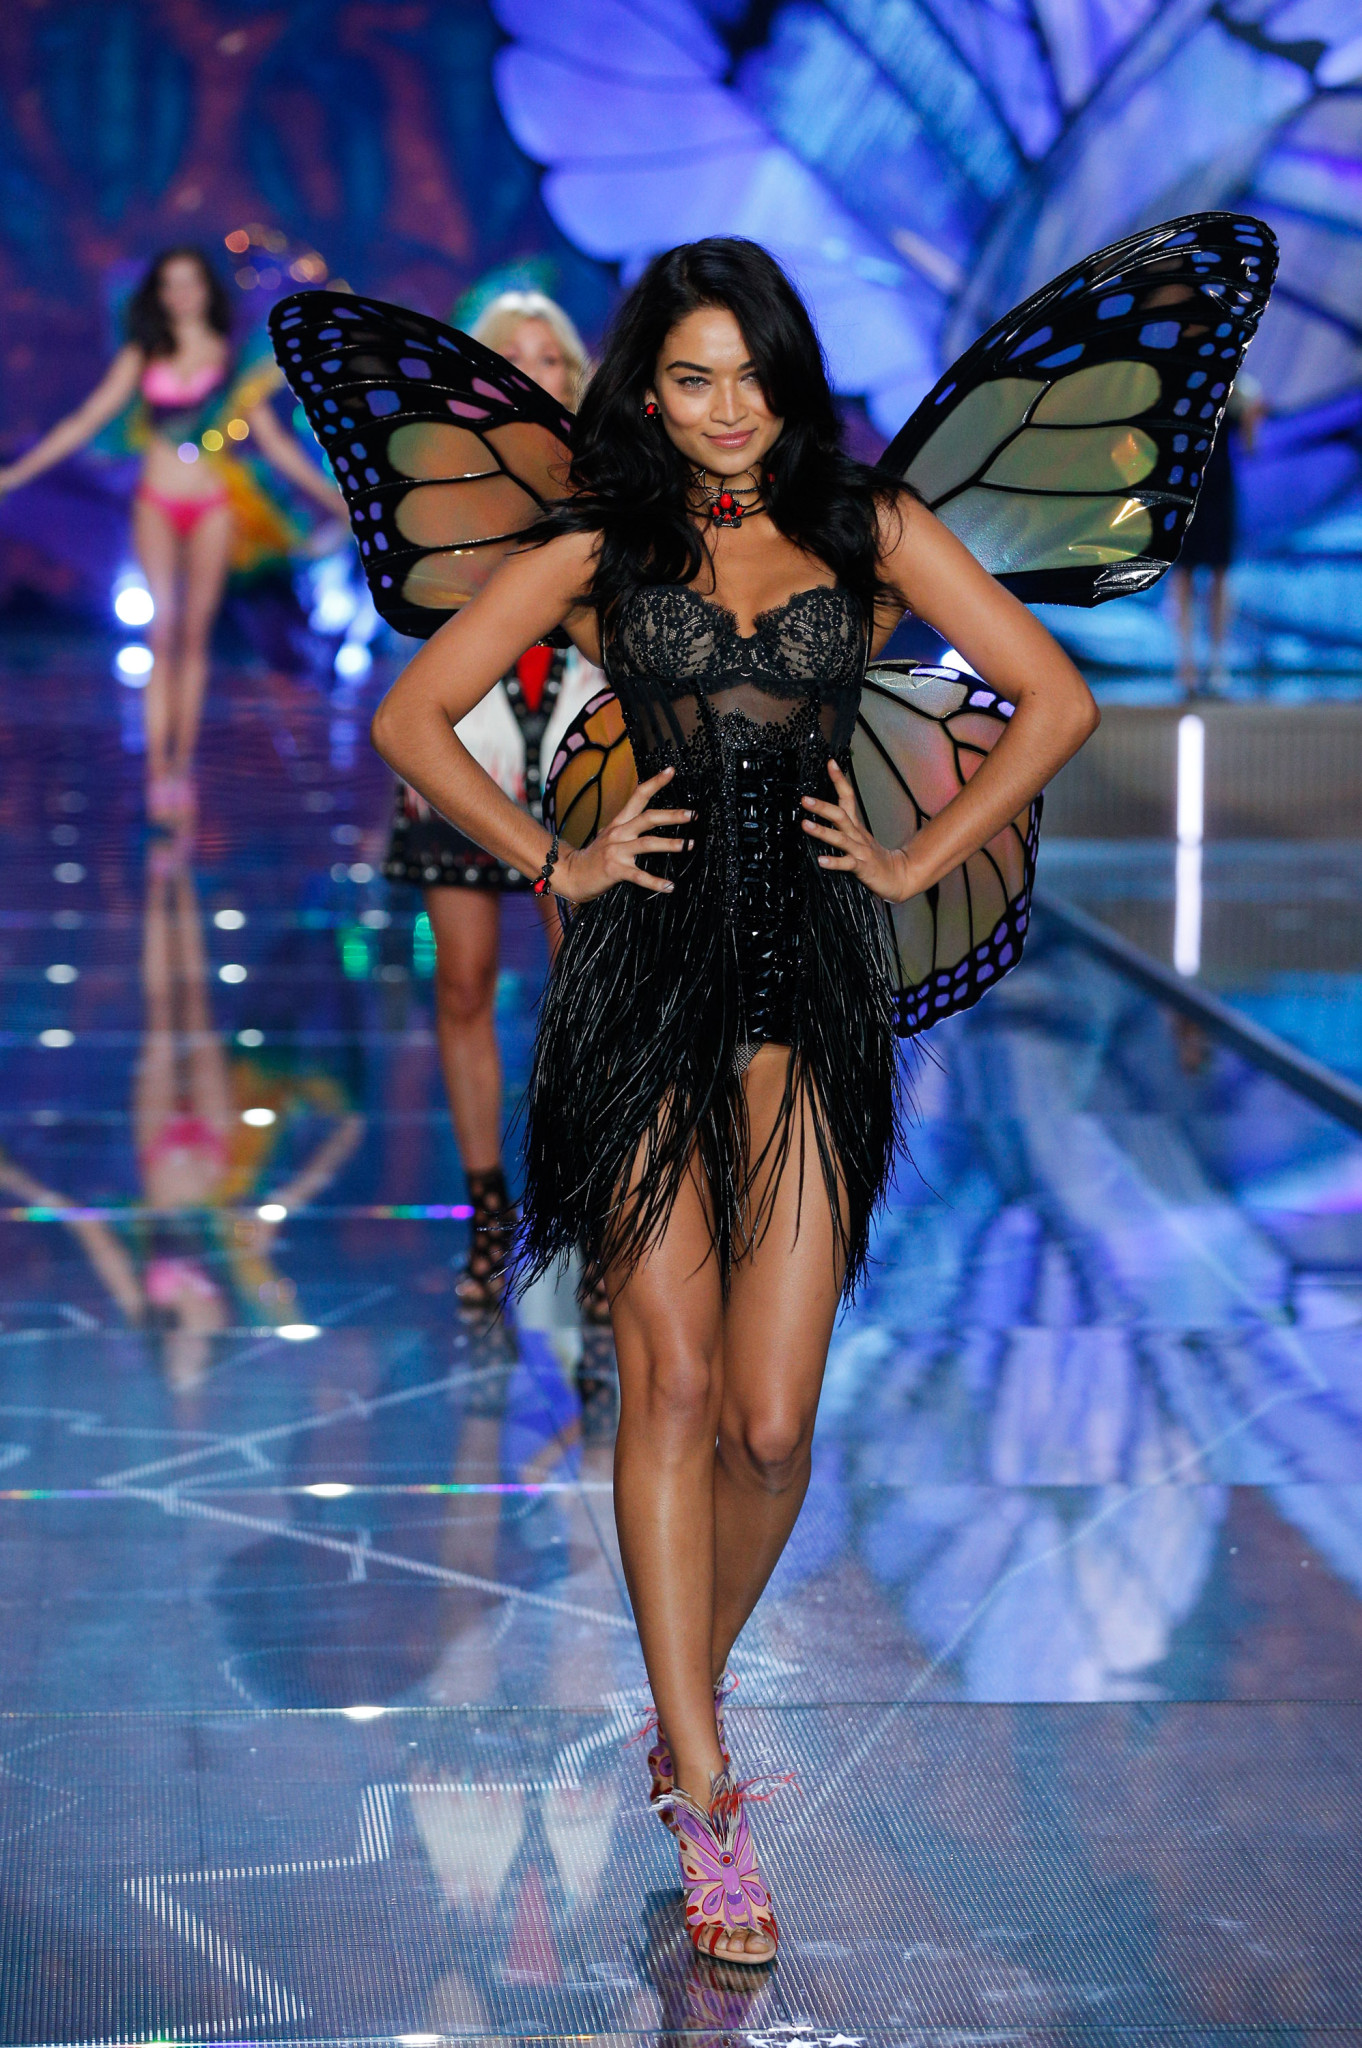 NEW YORK, NY - NOVEMBER 10: Model Shanina Shaik walks the runway during the 2015 Victoria's Secret Fashion Show at Lexington Avenue Armory on November 10, 2015 in New York City.